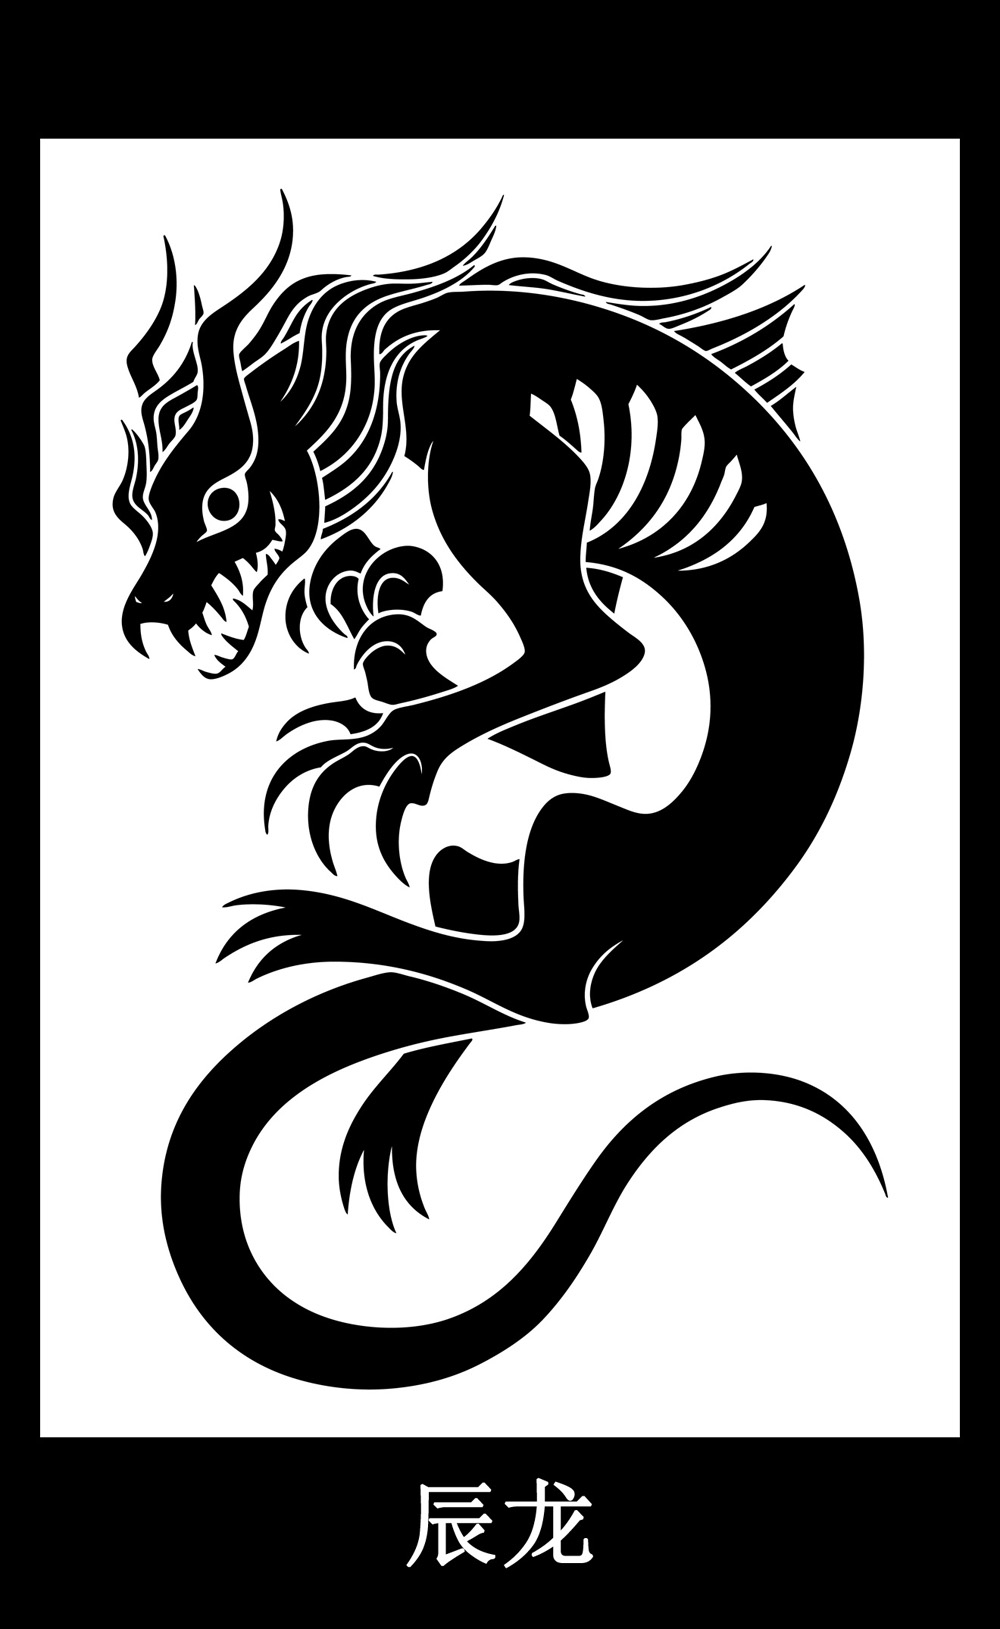 05___dragon___scp_682_by_sunnyclockwork-day75g6.jpg